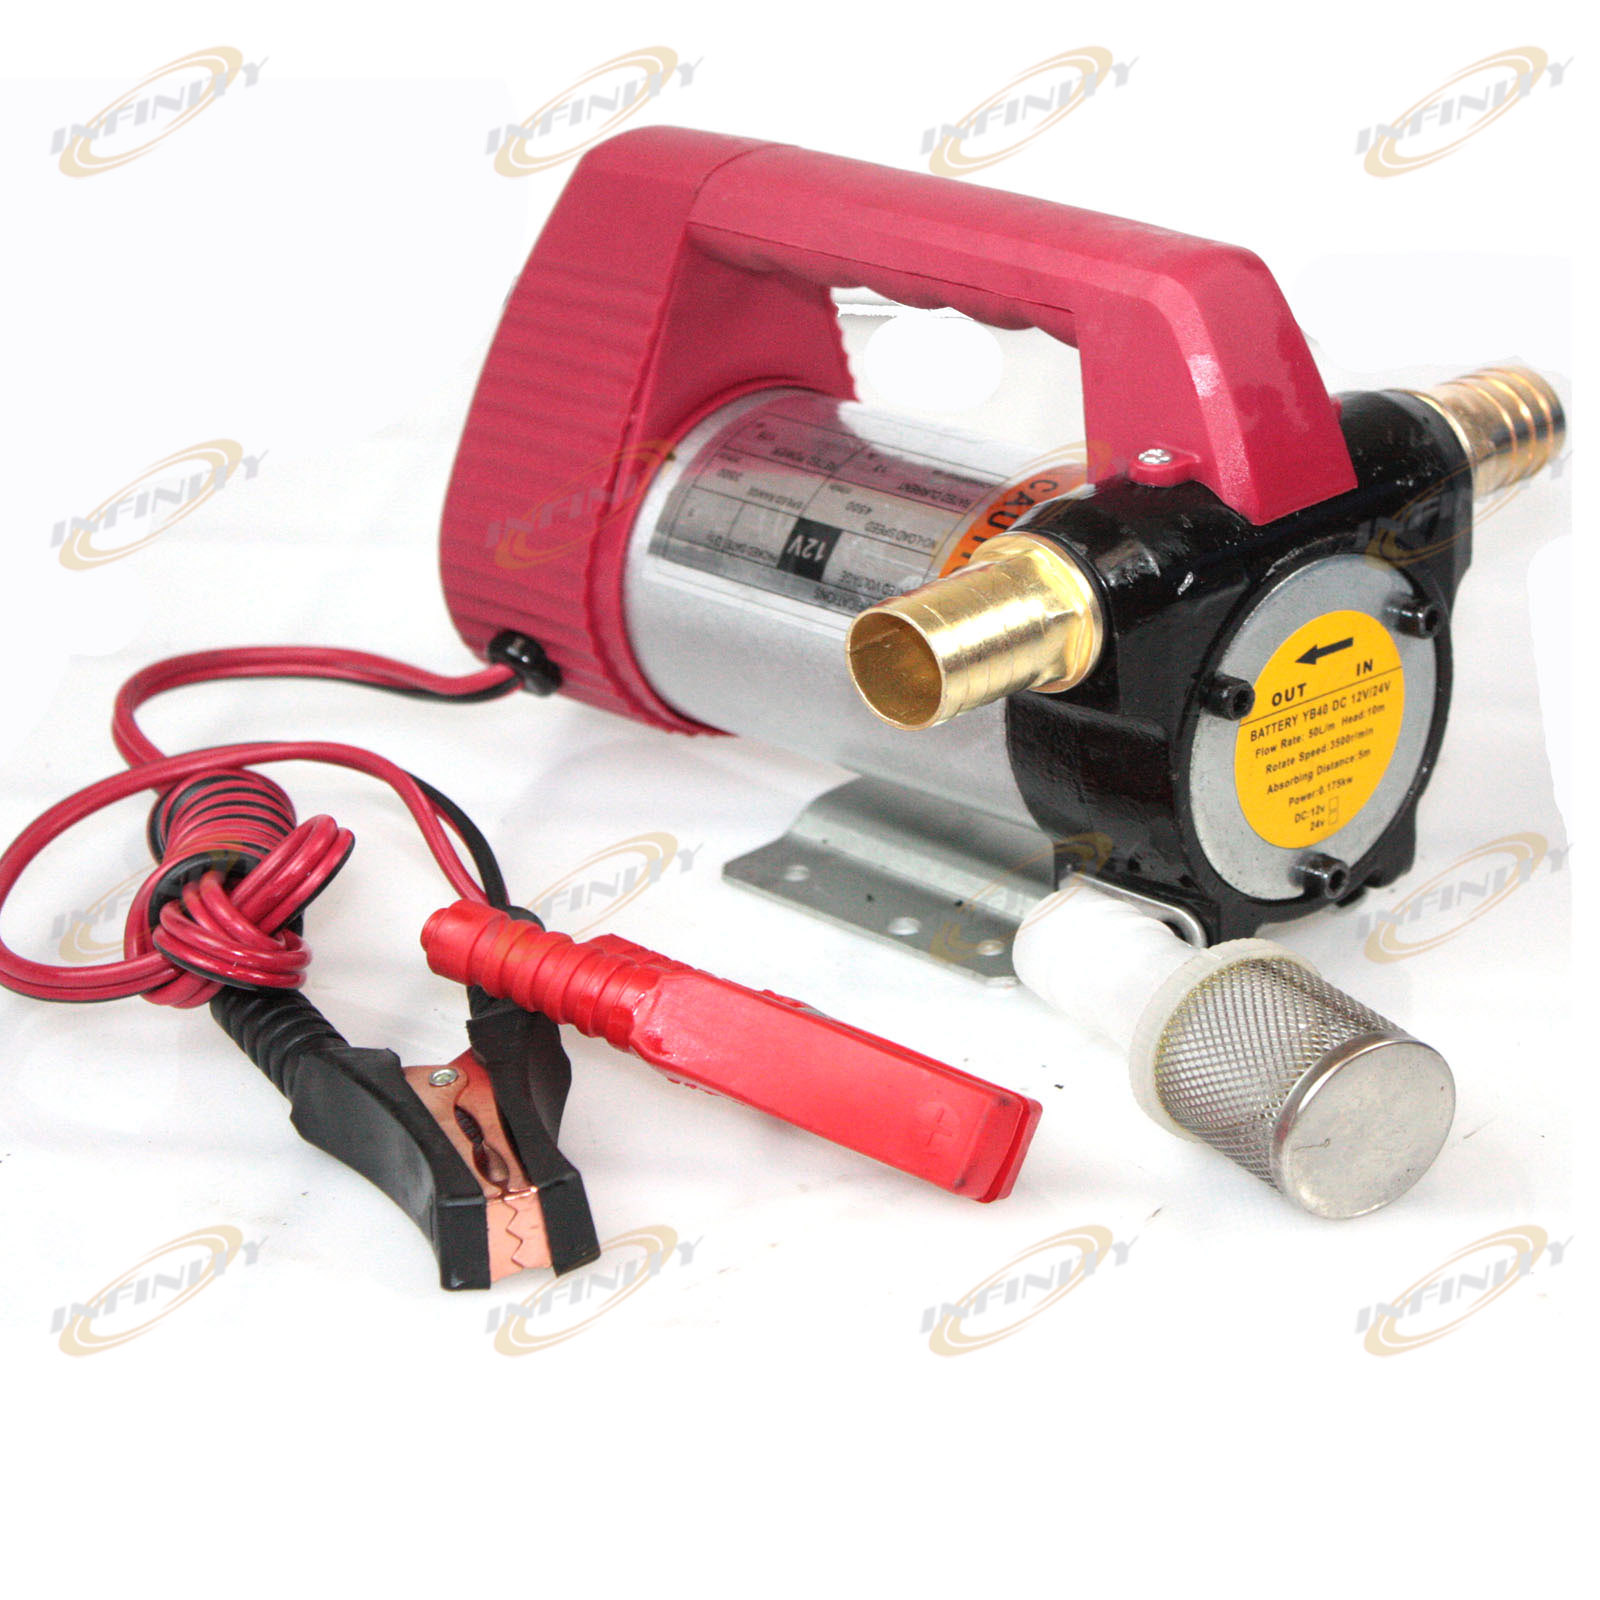 12v Diesel Cast Fuel Oil Transfer Pump 175w 11gpm Direct Biodiesel Filter Package 1set Of Two Brass Adapters 1 Gasket